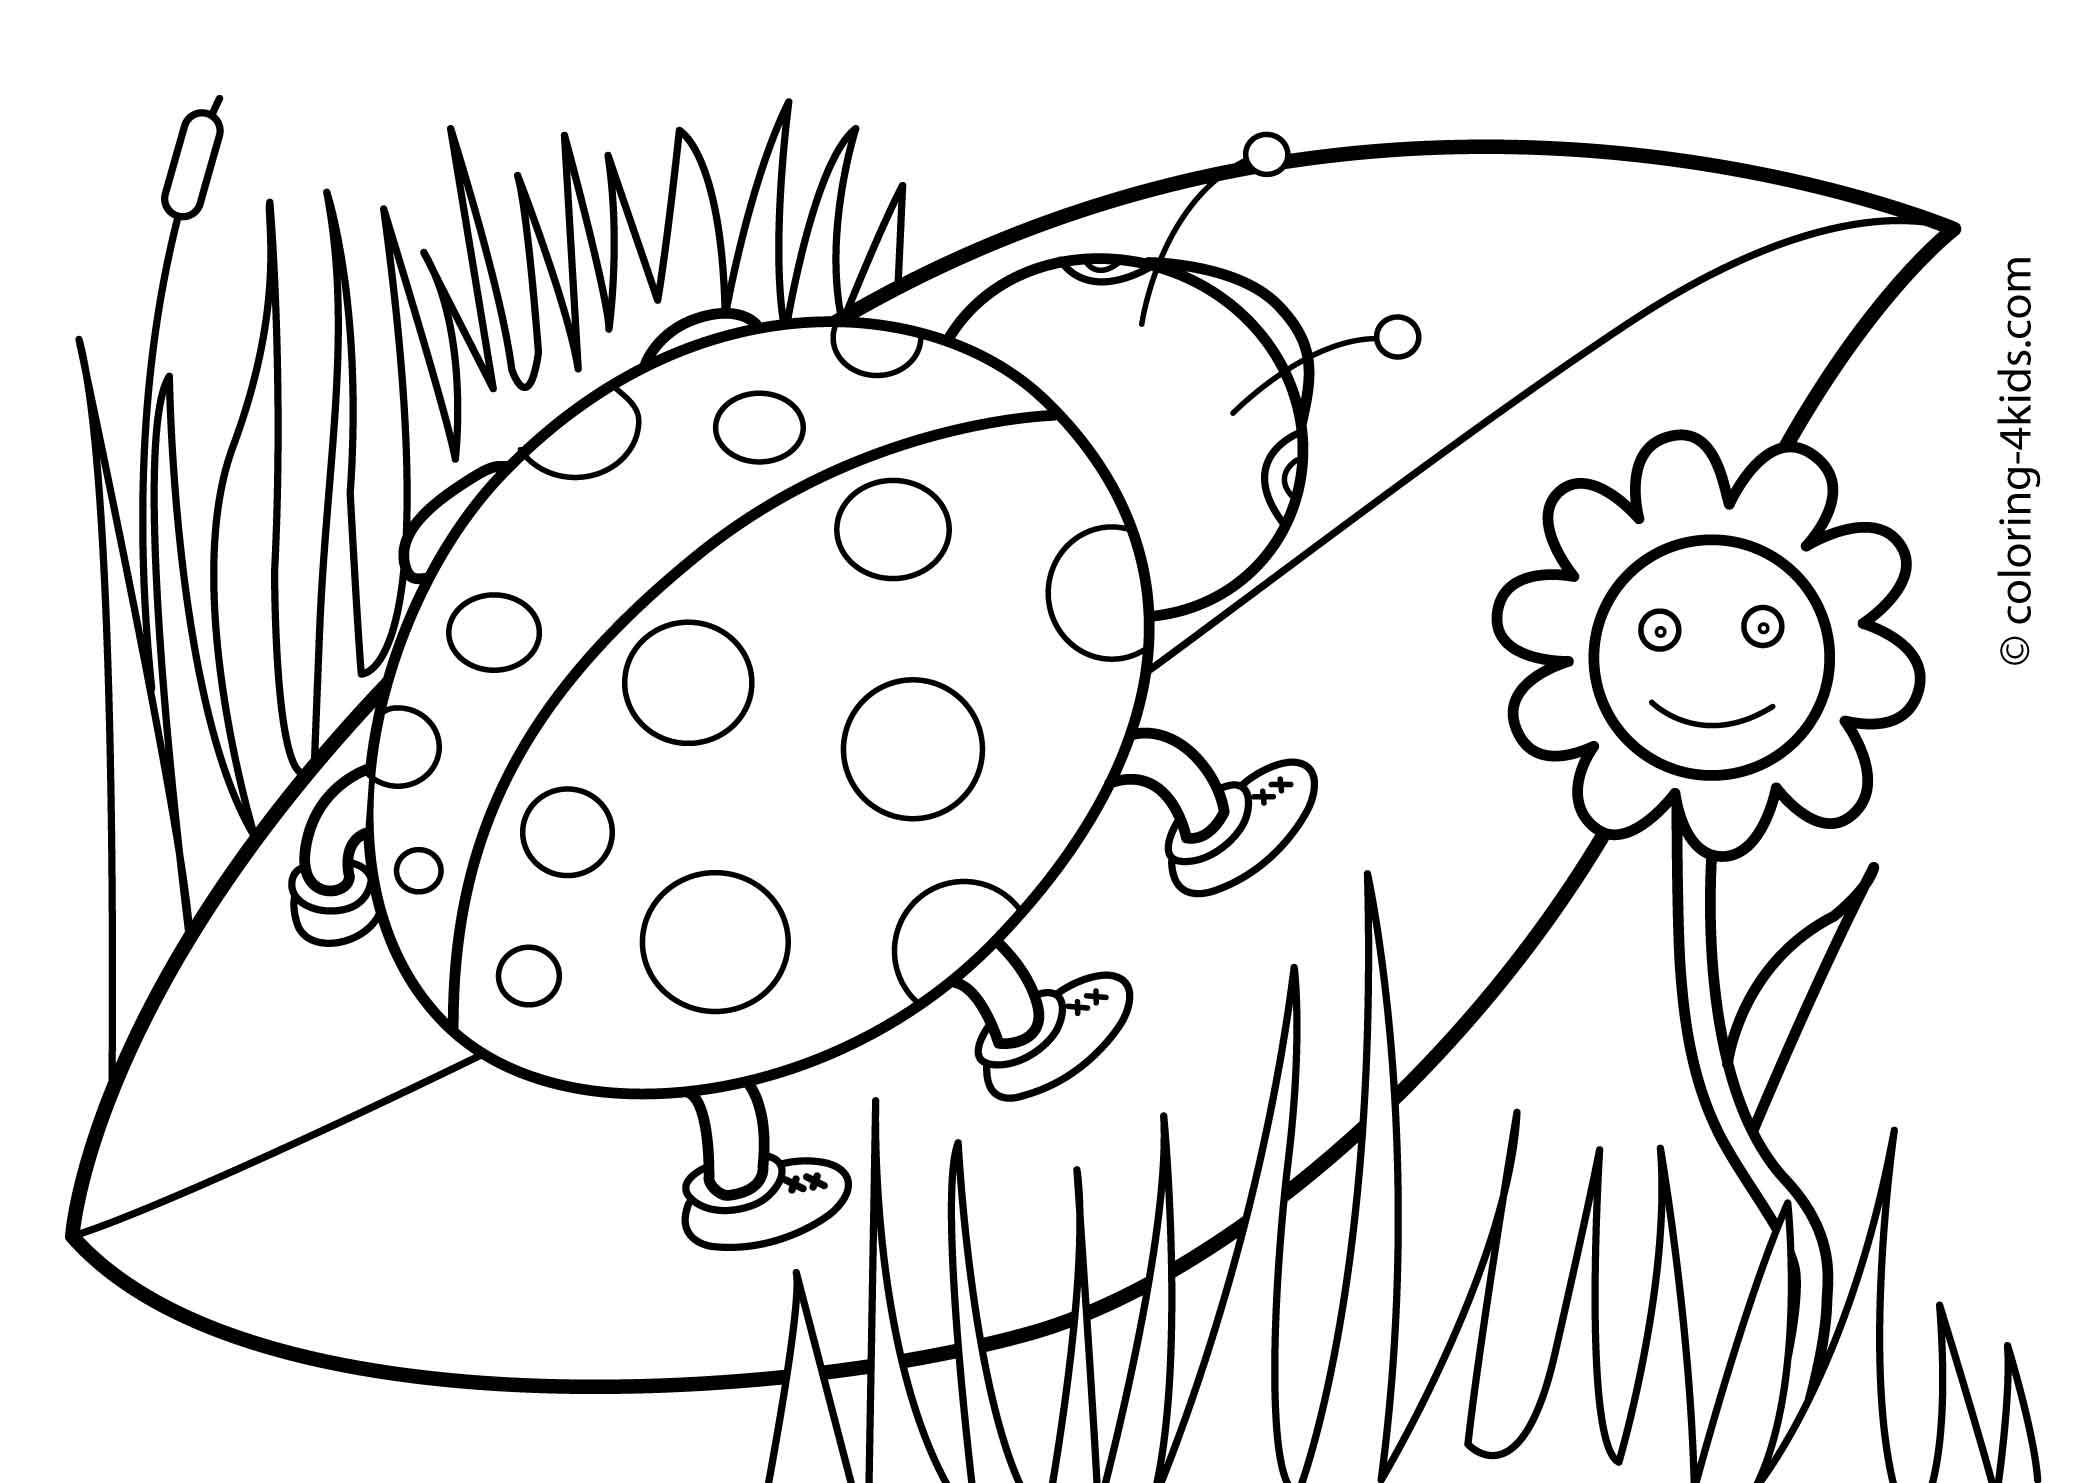 Free coloring pages spring flowers - Co Coloring Pictures Of Spring Spring Coloring Pages For Kids Free Printable Coloing 4kids Com